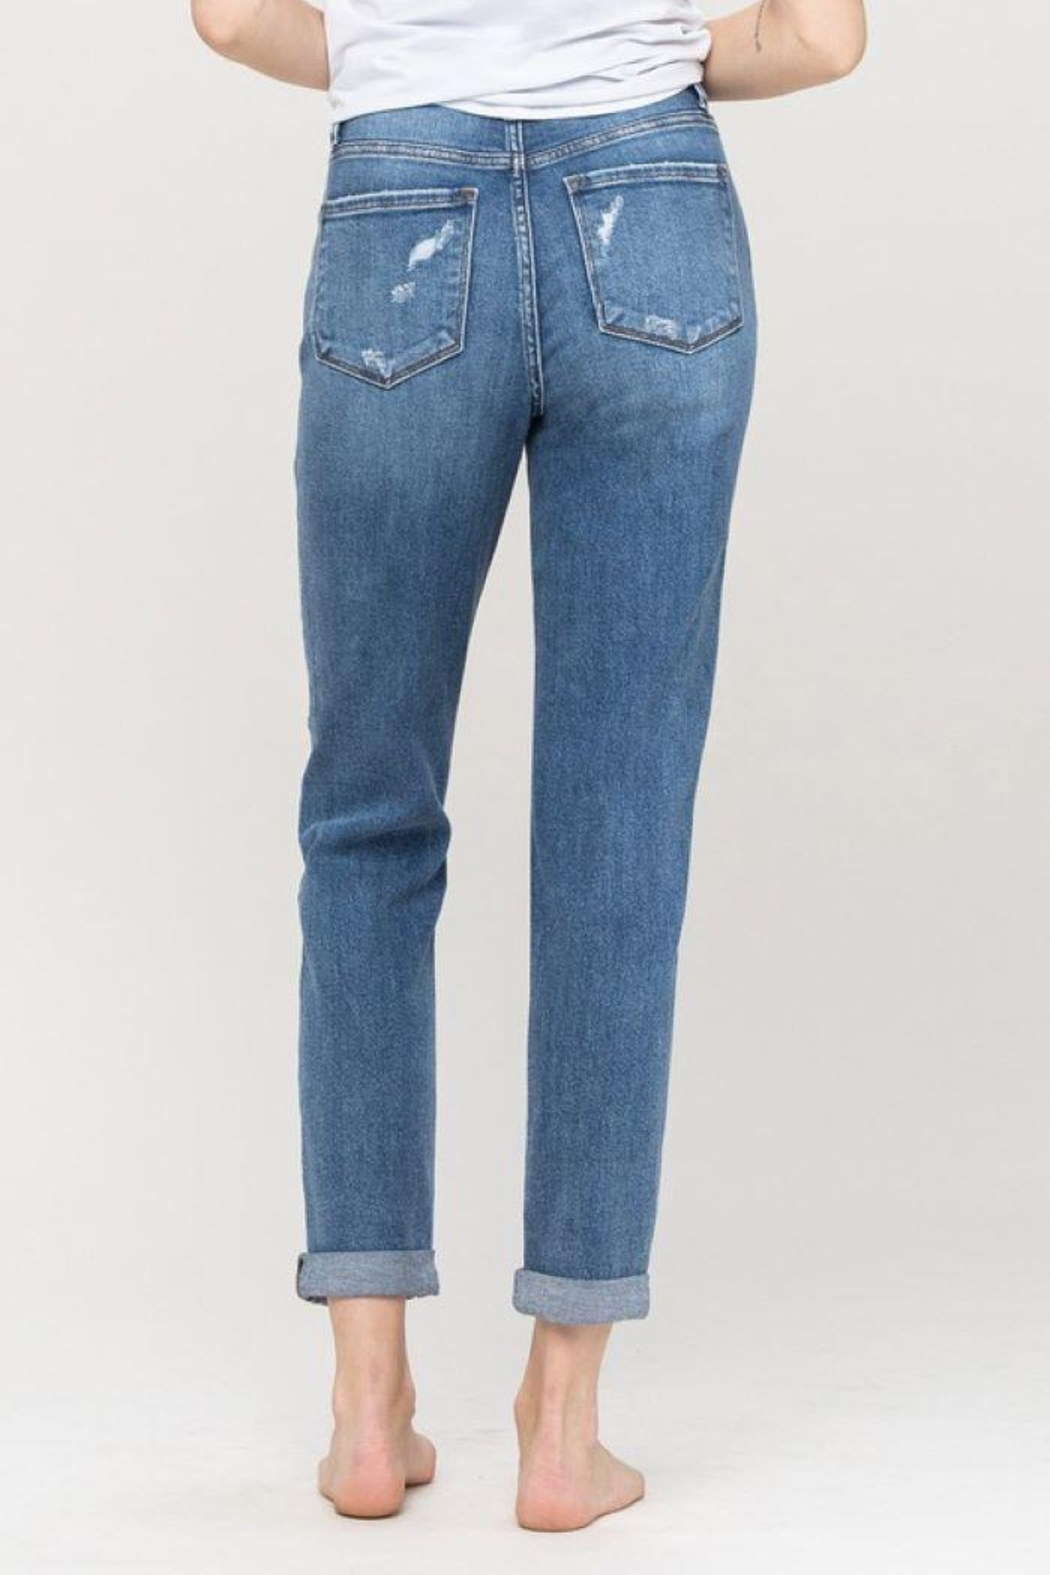 Flying Monkey Distressed Double Cuffed Stretch Mom Jean - Back Cropped Image